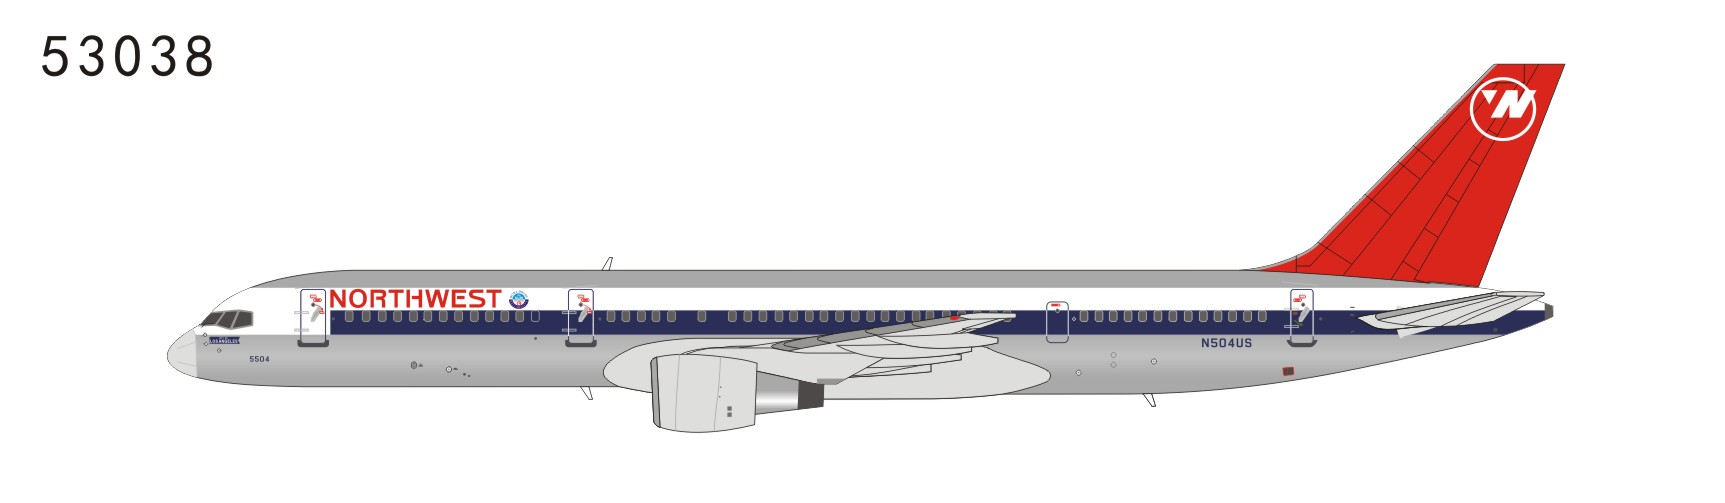 Nothwest Airlines 757-200 N504US full NW color, red tail with logo (1:400)